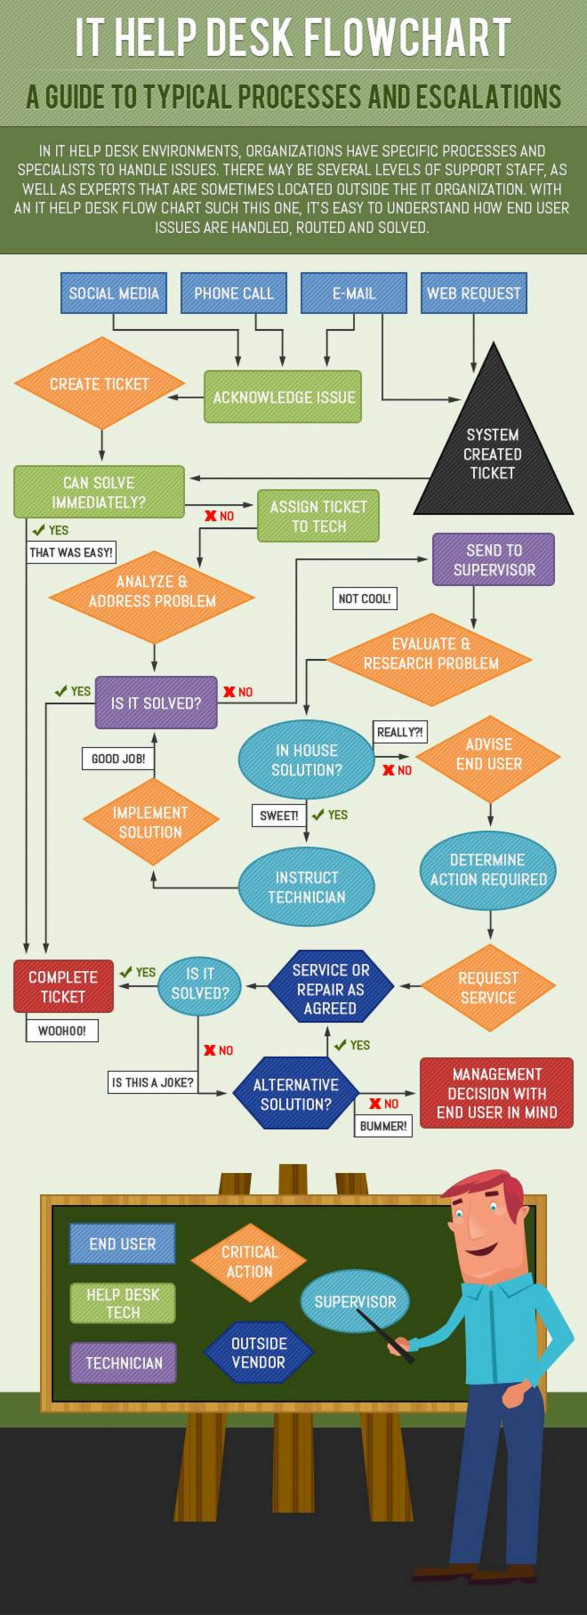 IT Help Desk Flowchart